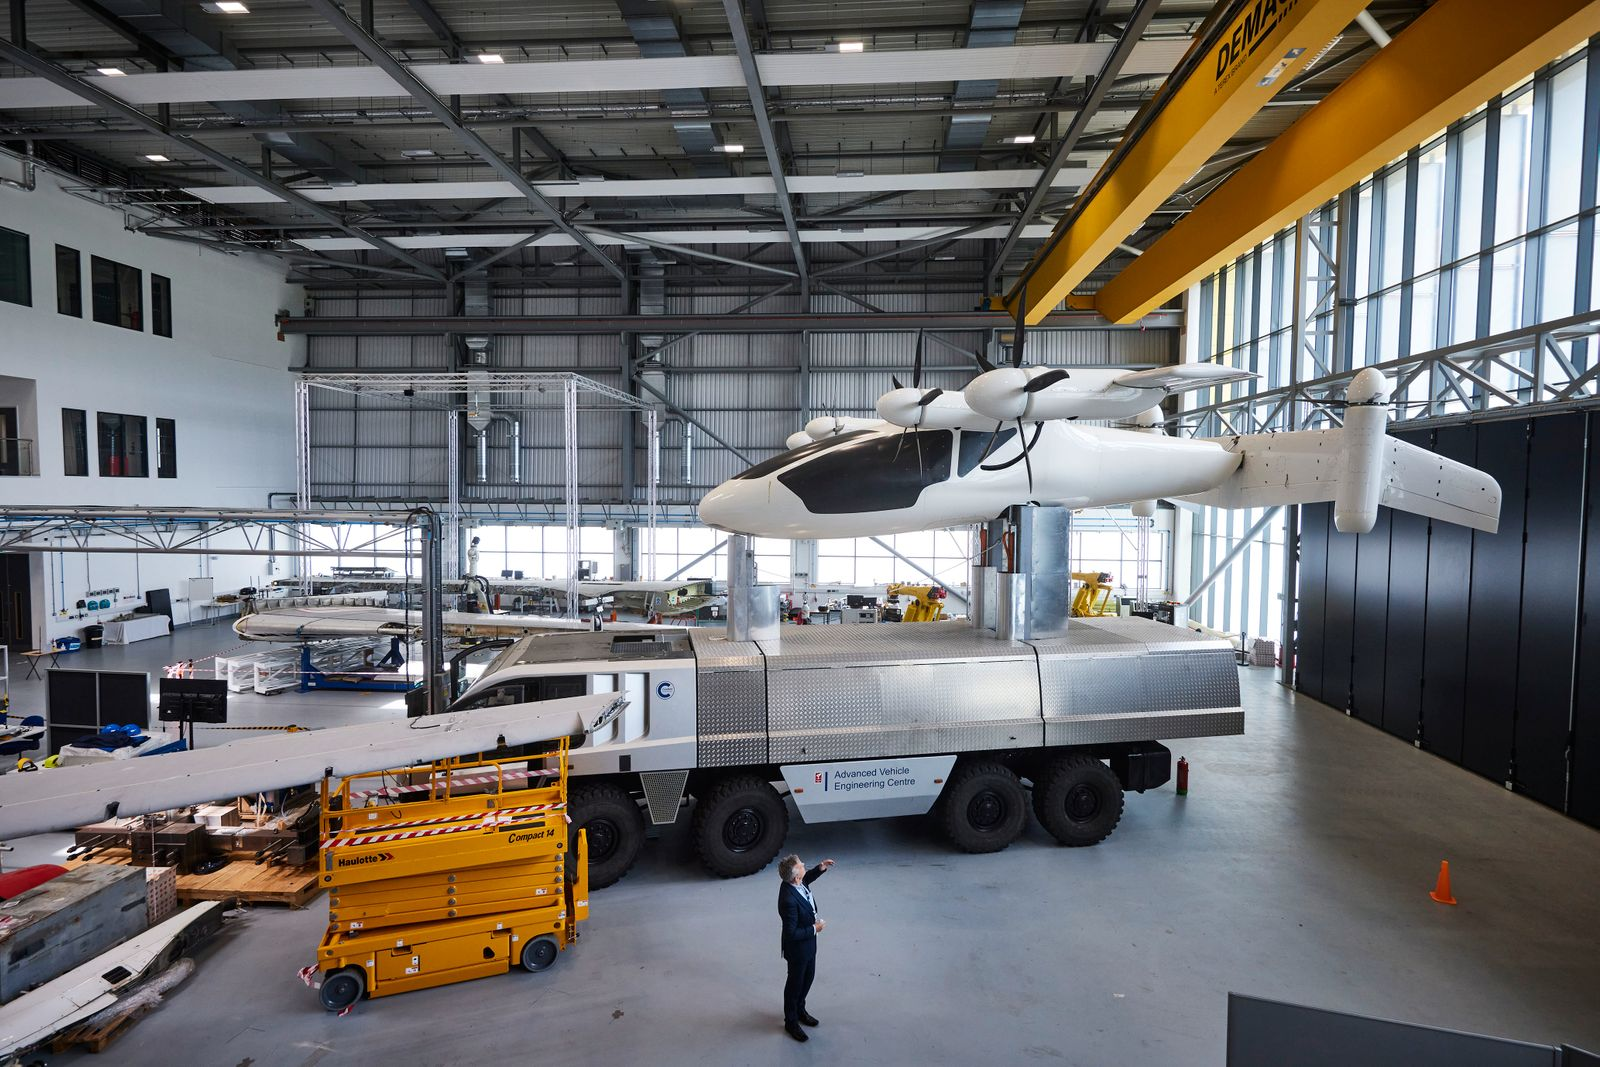 ?They said we were eccentrics?: the UK team developing clean aviation fuel. In the search for sustainable flying, Cranfield University might have found the answer in hydrogen